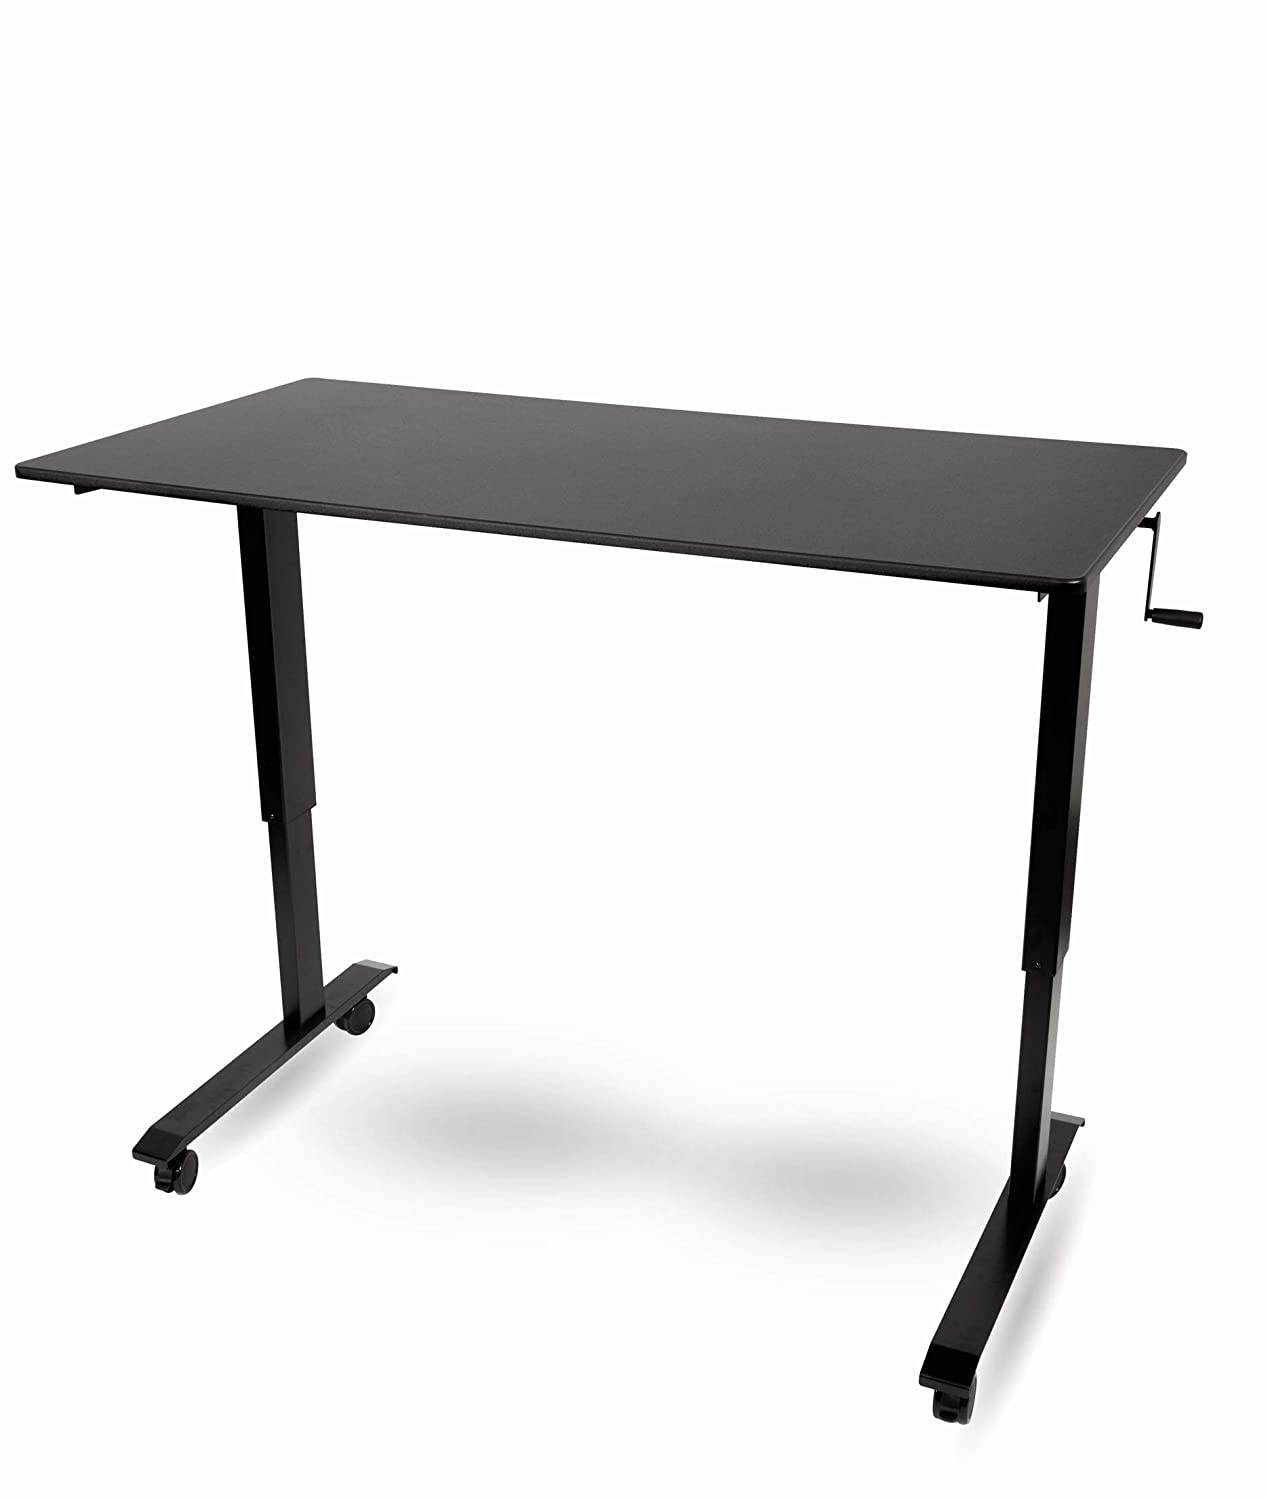 56 Inches Wide, Charcoal Frame//Natural Walnut Top Crank Adjustable Height Standing Desk